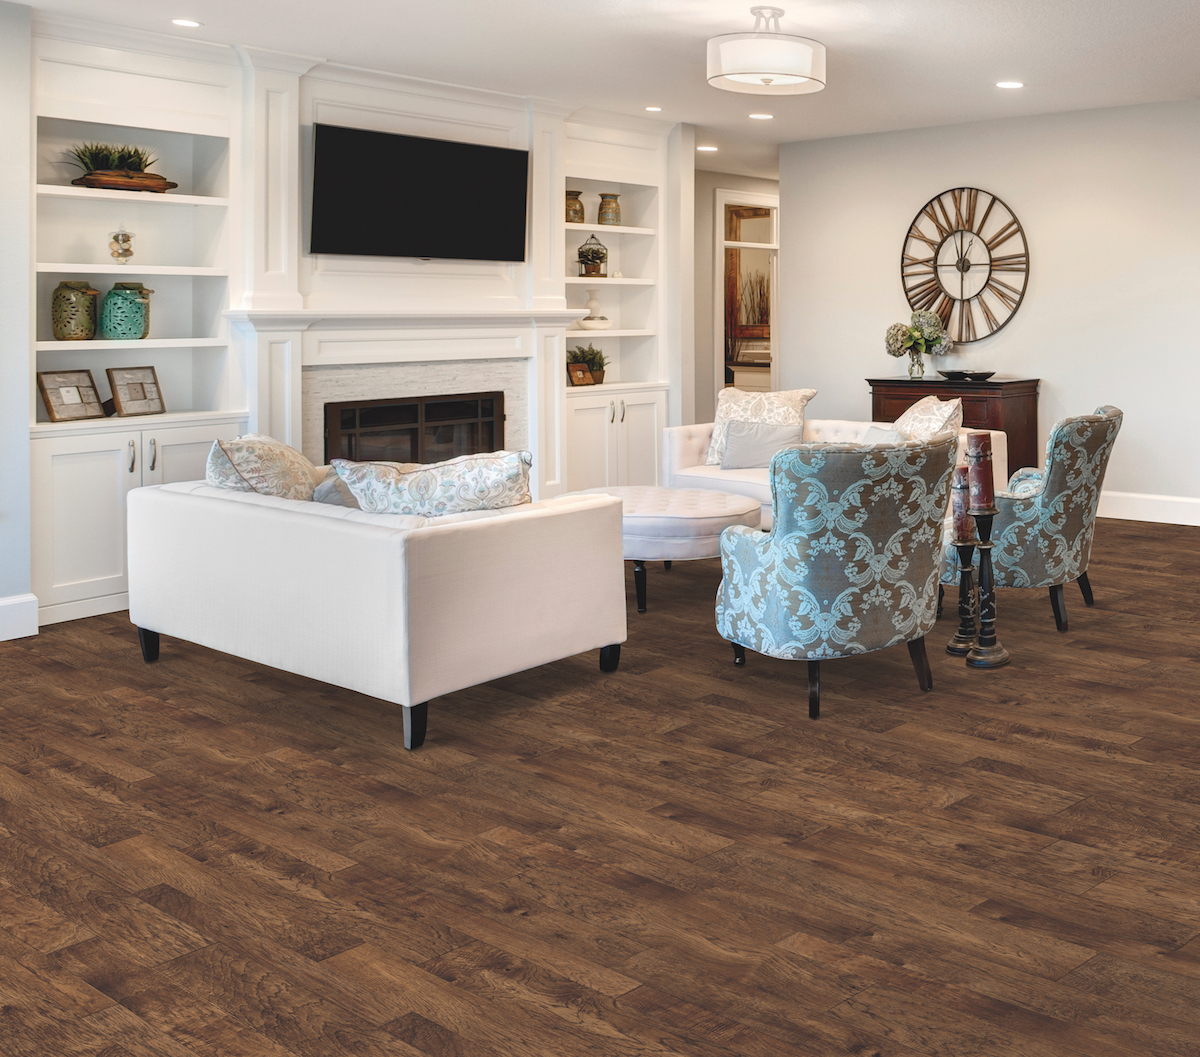 Flooring in the living room